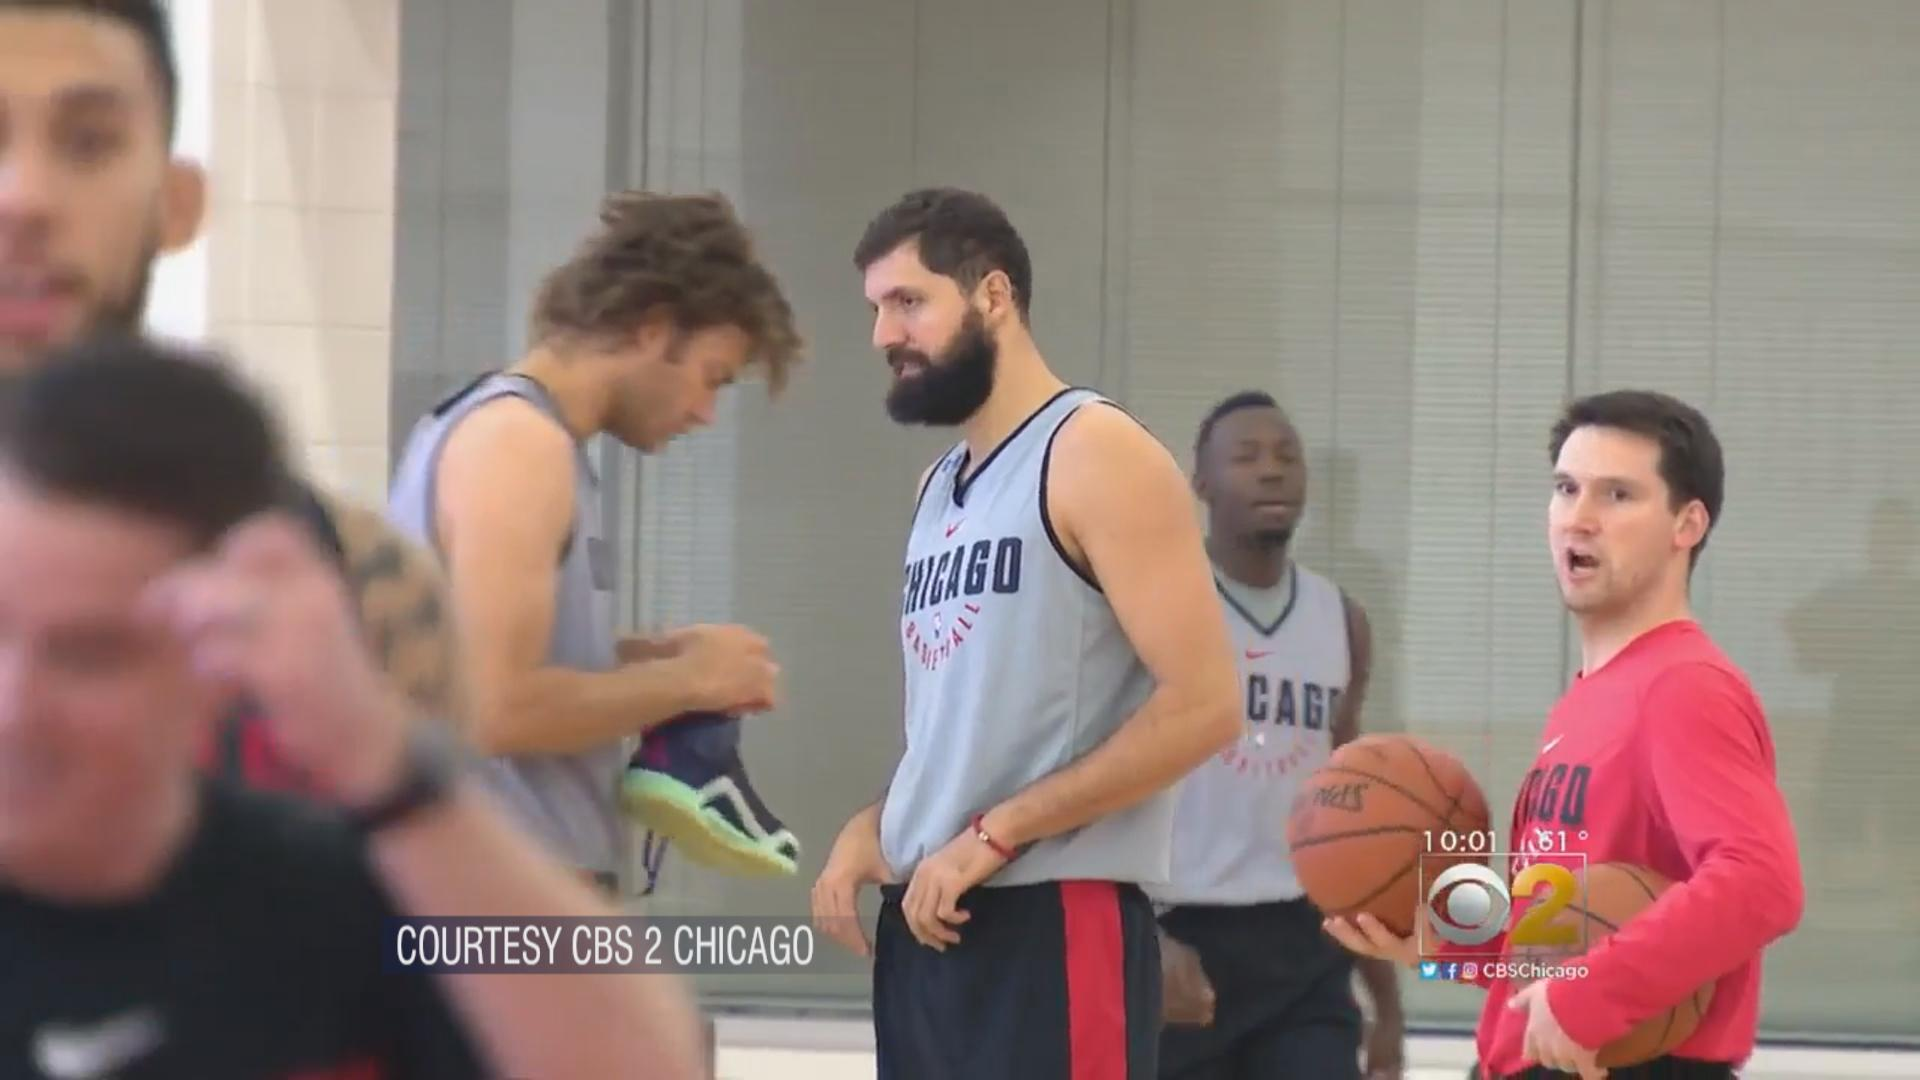 Nikola Mirotic, center. (Courtesy of CBS 2 Chicago)